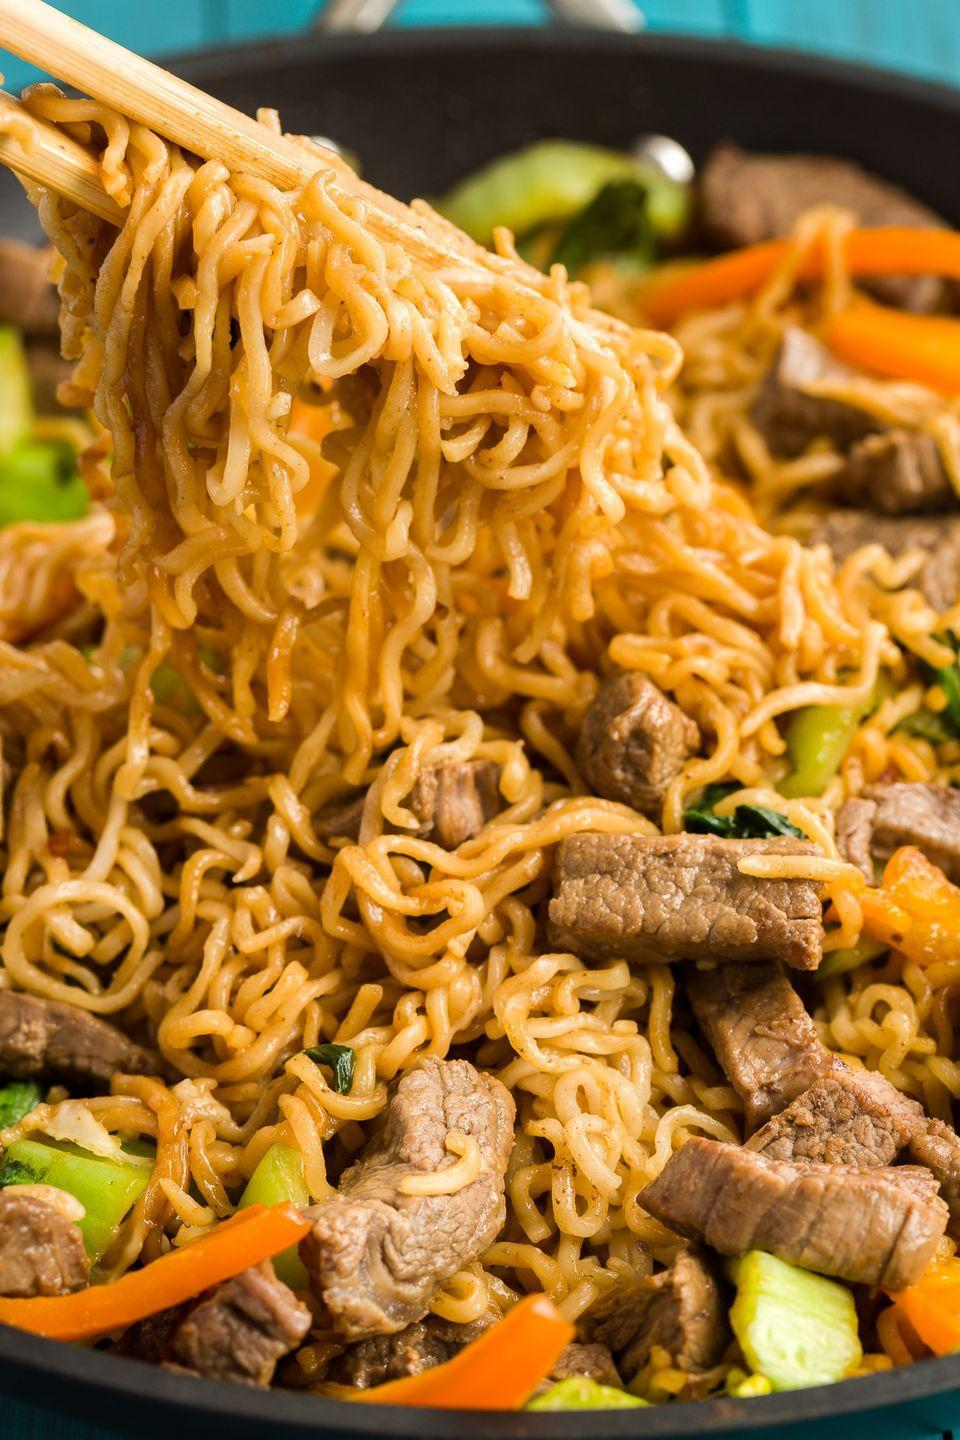 """<p>Love ramen? Start incorporating the noodles into a stir-fry with this easy weeknight dinner.</p><p>Get the recipe from <a href=""""https://www.delish.com/cooking/recipe-ideas/recipes/a46097/ramen-noodle-skillet-with-steak-recipe/"""" rel=""""nofollow noopener"""" target=""""_blank"""" data-ylk=""""slk:Delish"""" class=""""link rapid-noclick-resp"""">Delish</a>.</p>"""